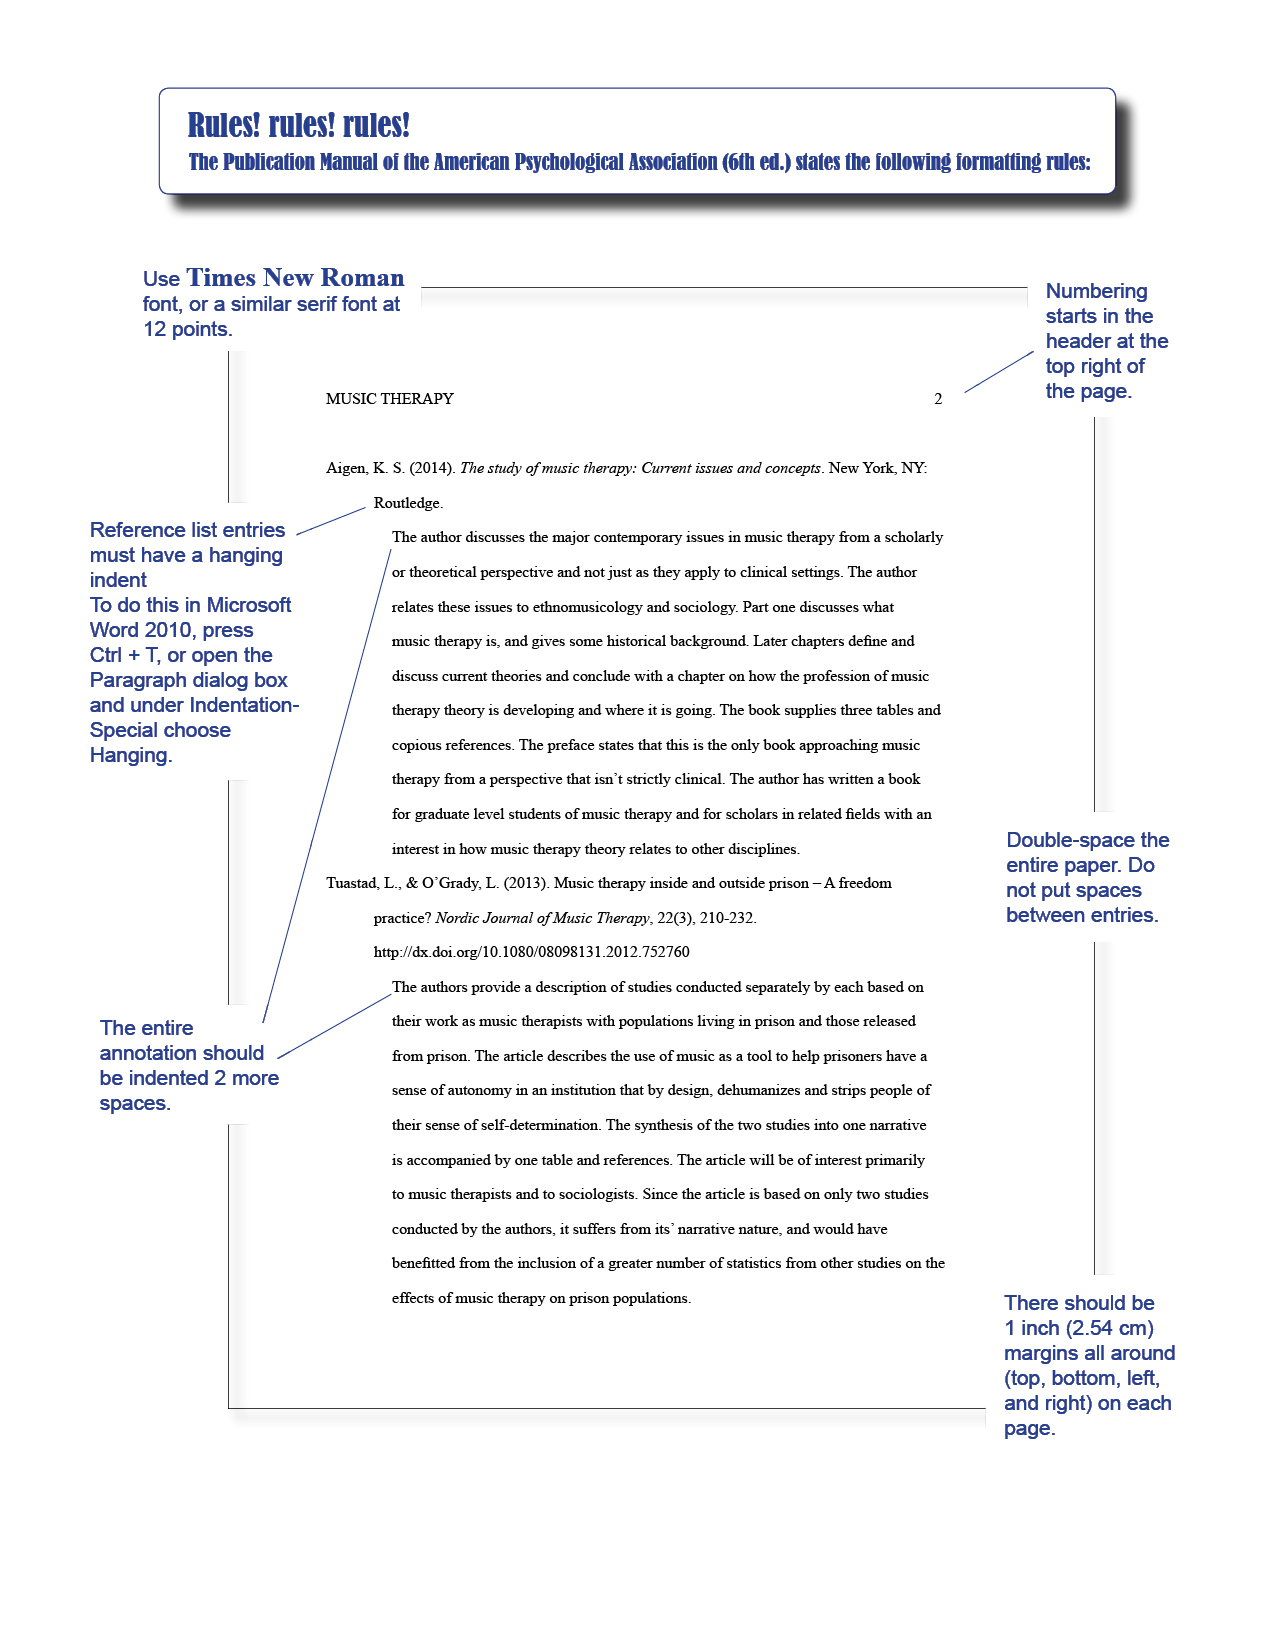 creating apa annotated bibliographies 6th ed Apa annotated bibliography (haddad) source: creating apa annotated bibliographies, 6th ed i'm editing my output style to create an apa annotated bibliography.